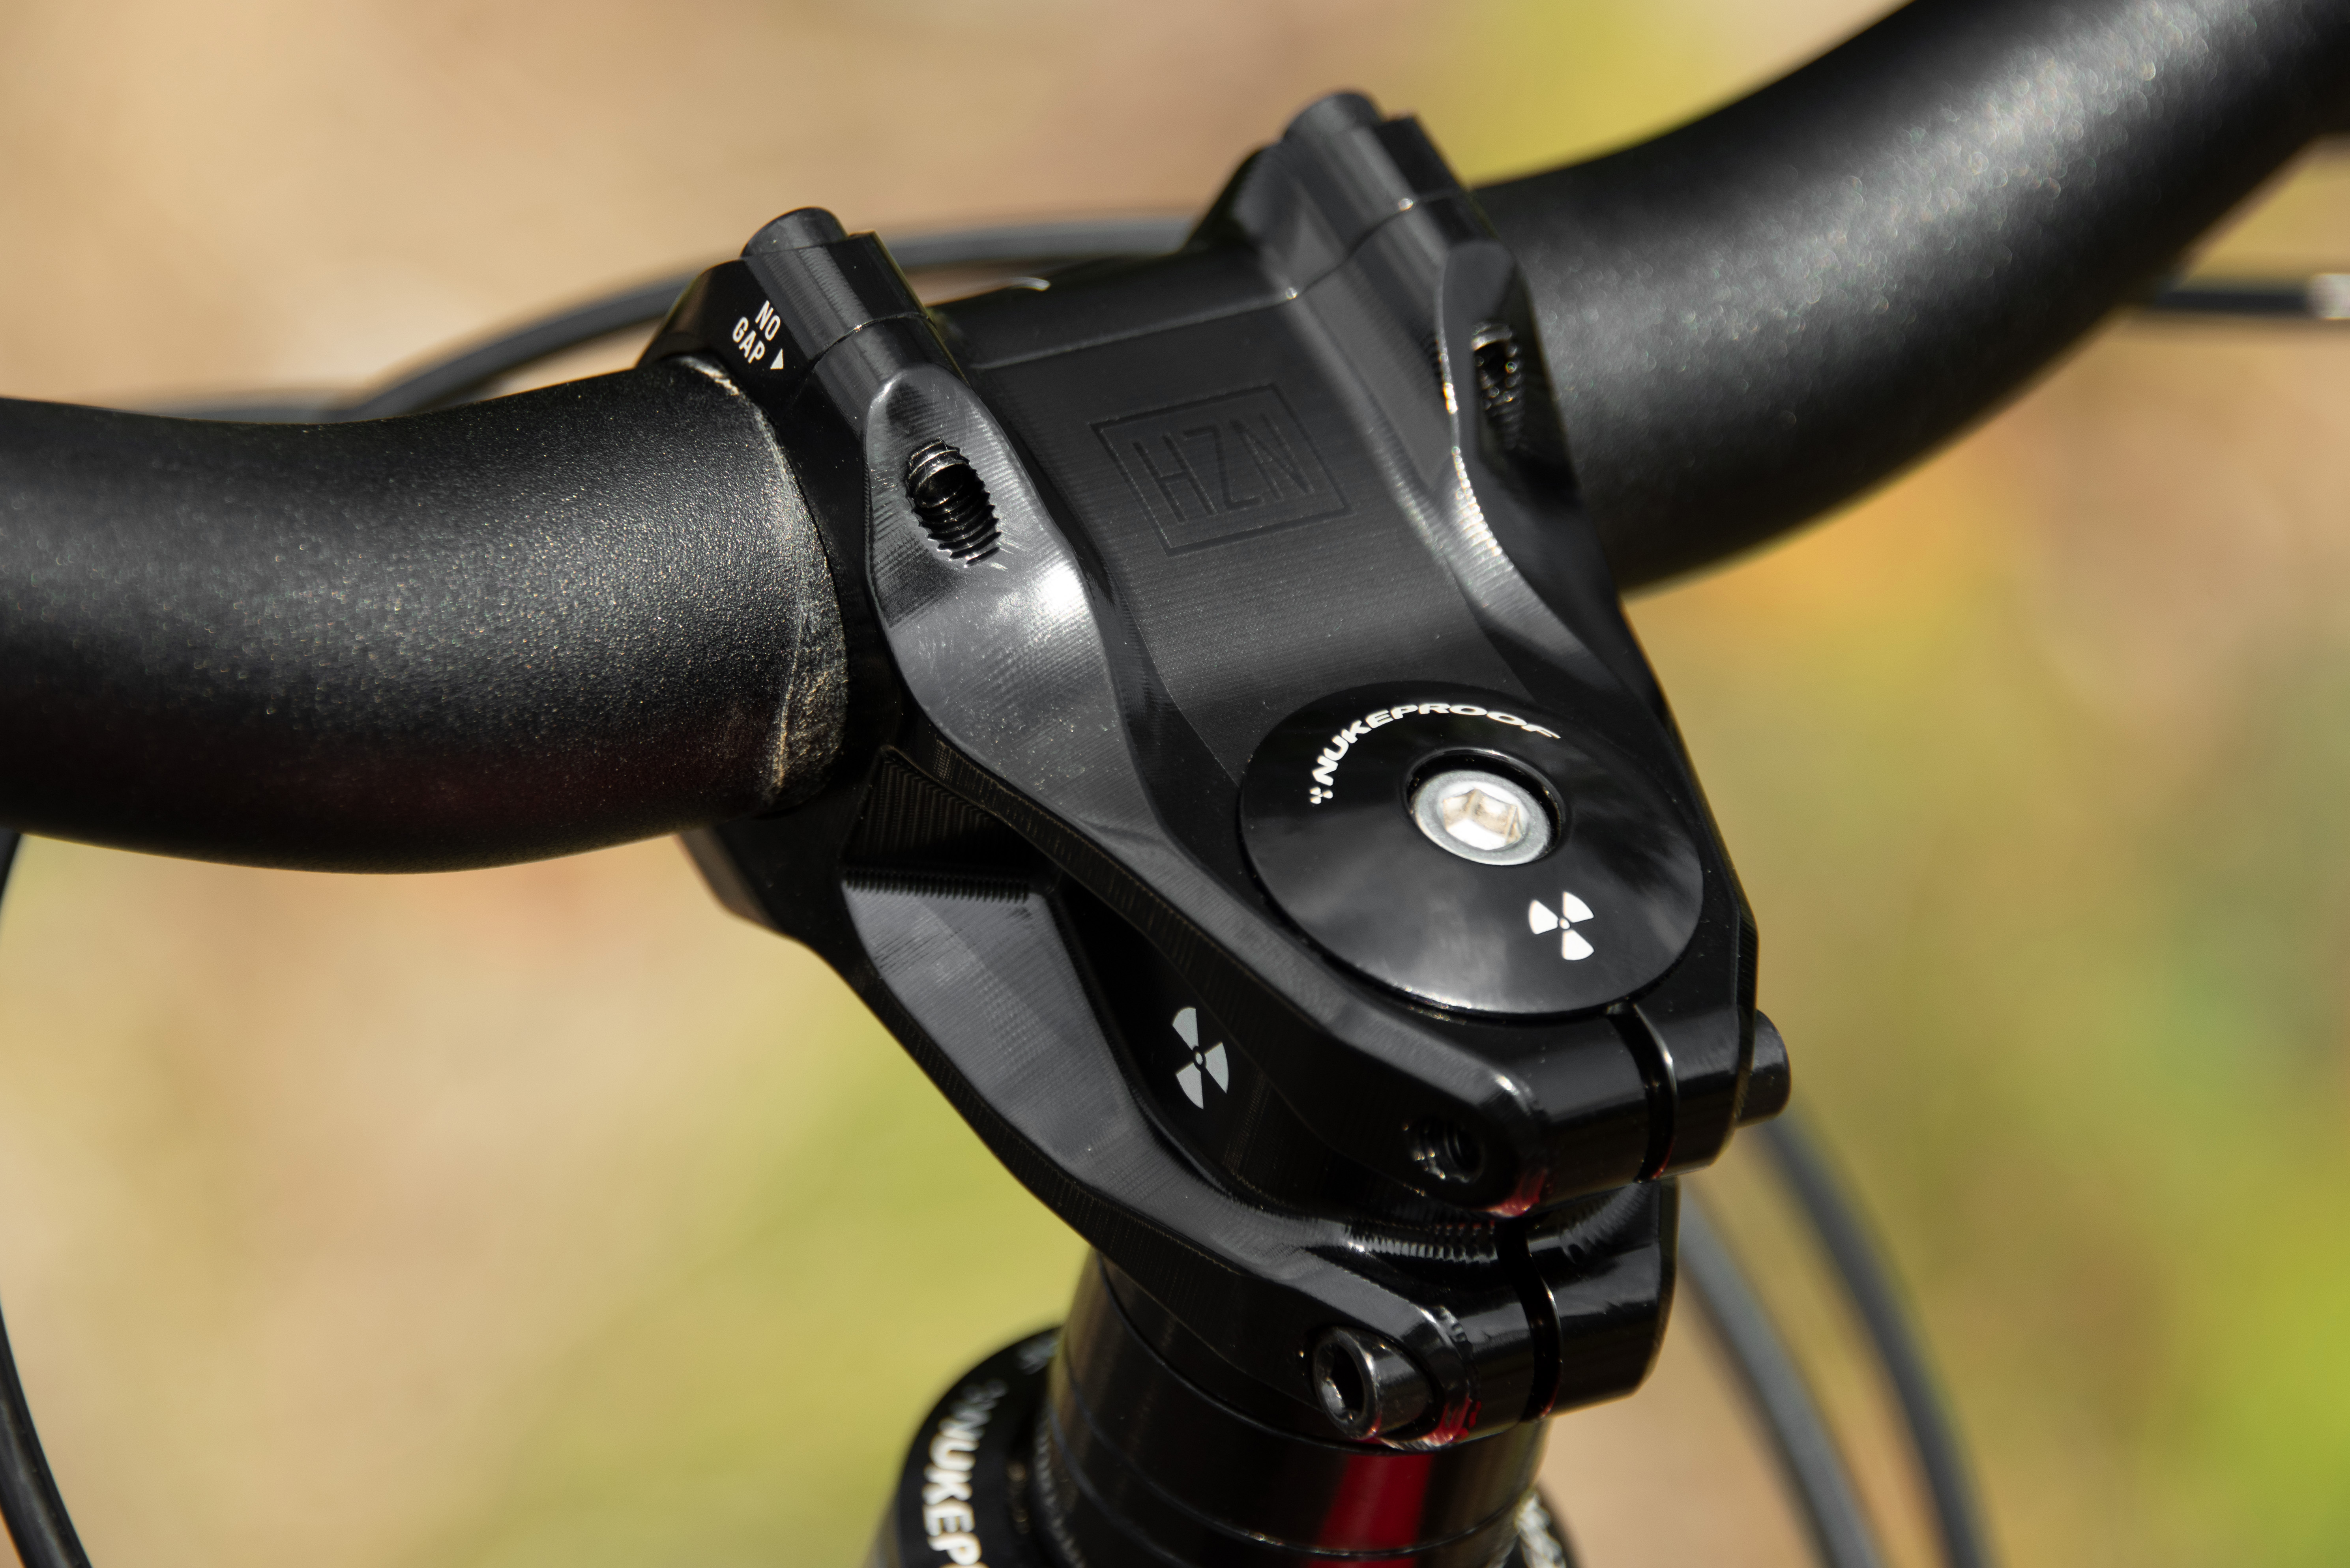 Nukeproof Top Cap and Star Nut | Top caps